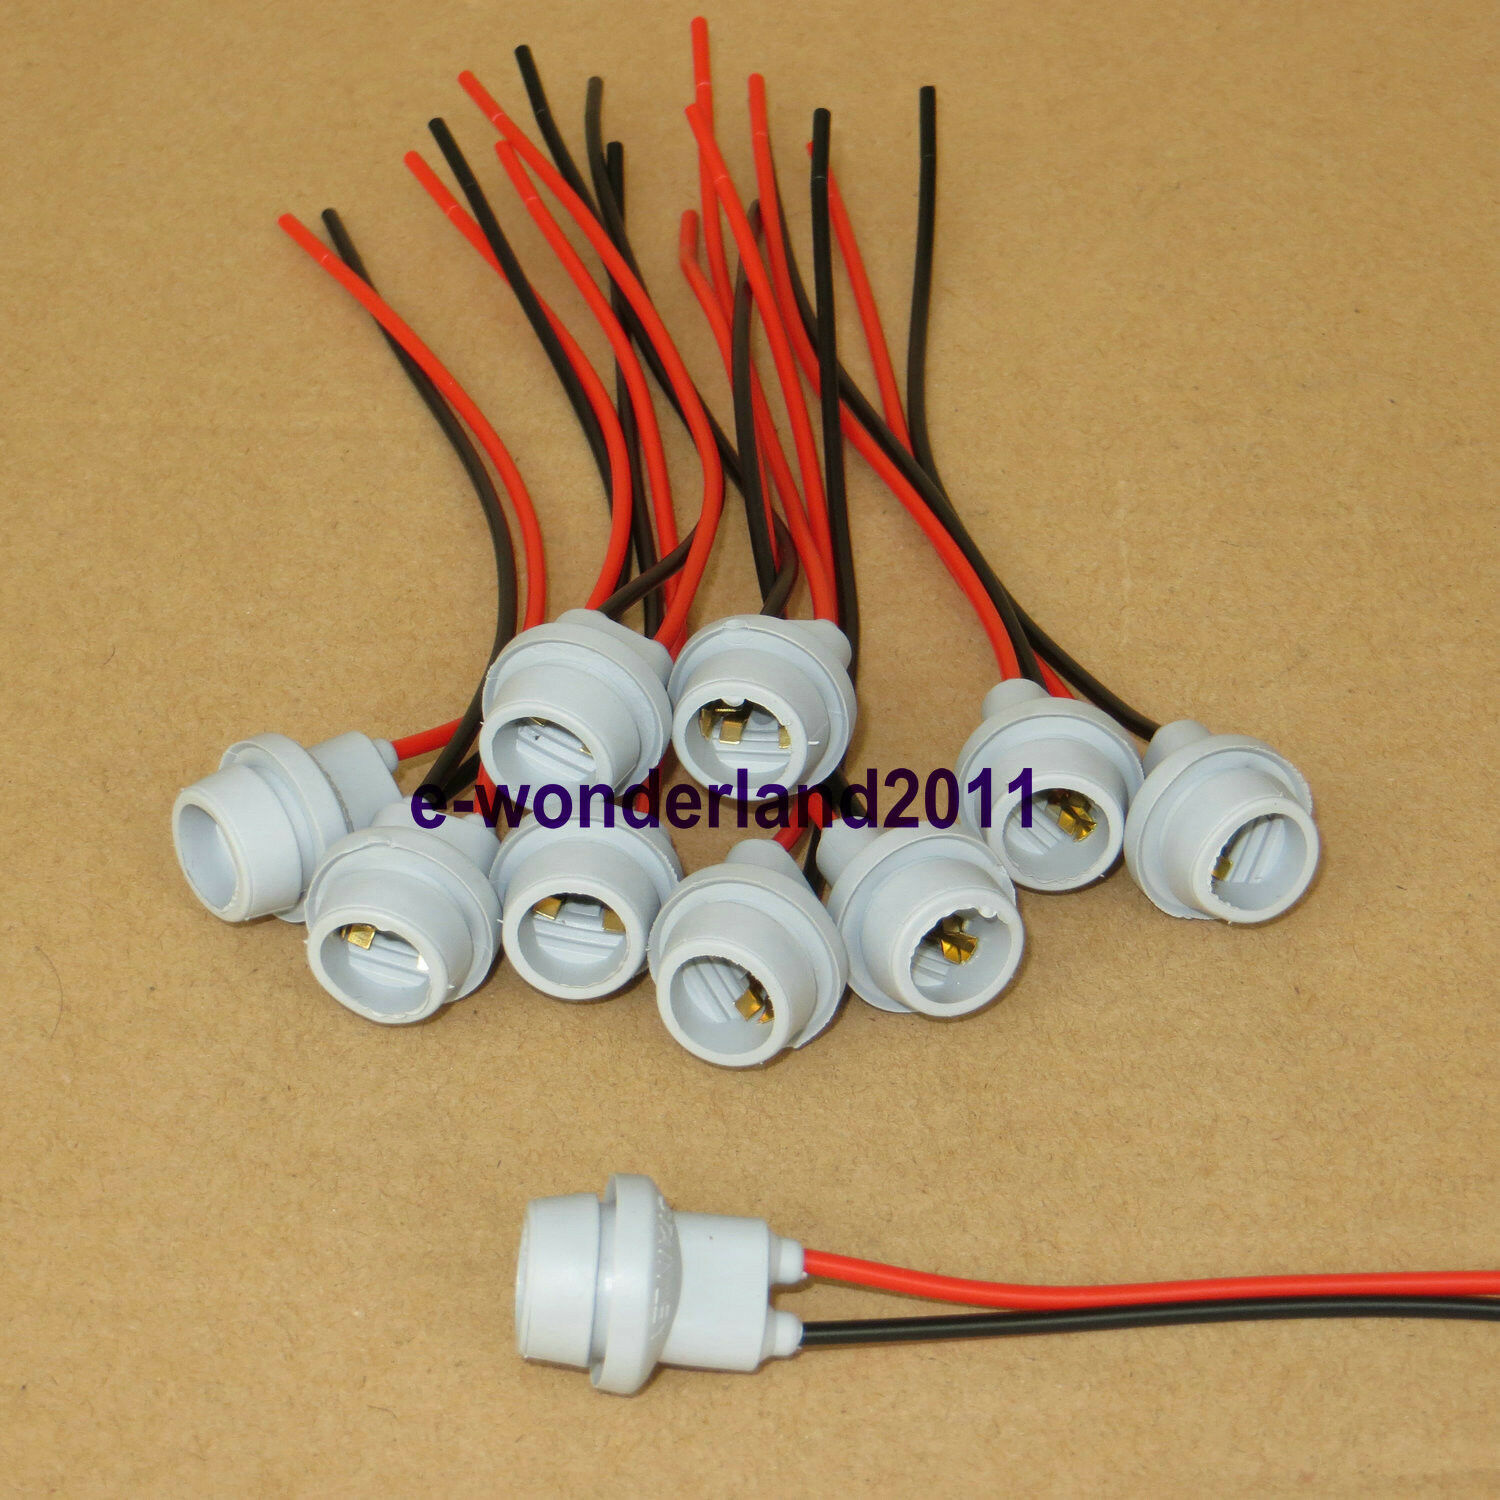 10 X Connectors Socket Bulb Light Harness Pigtail T10 168 194 Rubber Led Wiring 1 Of 3free Shipping